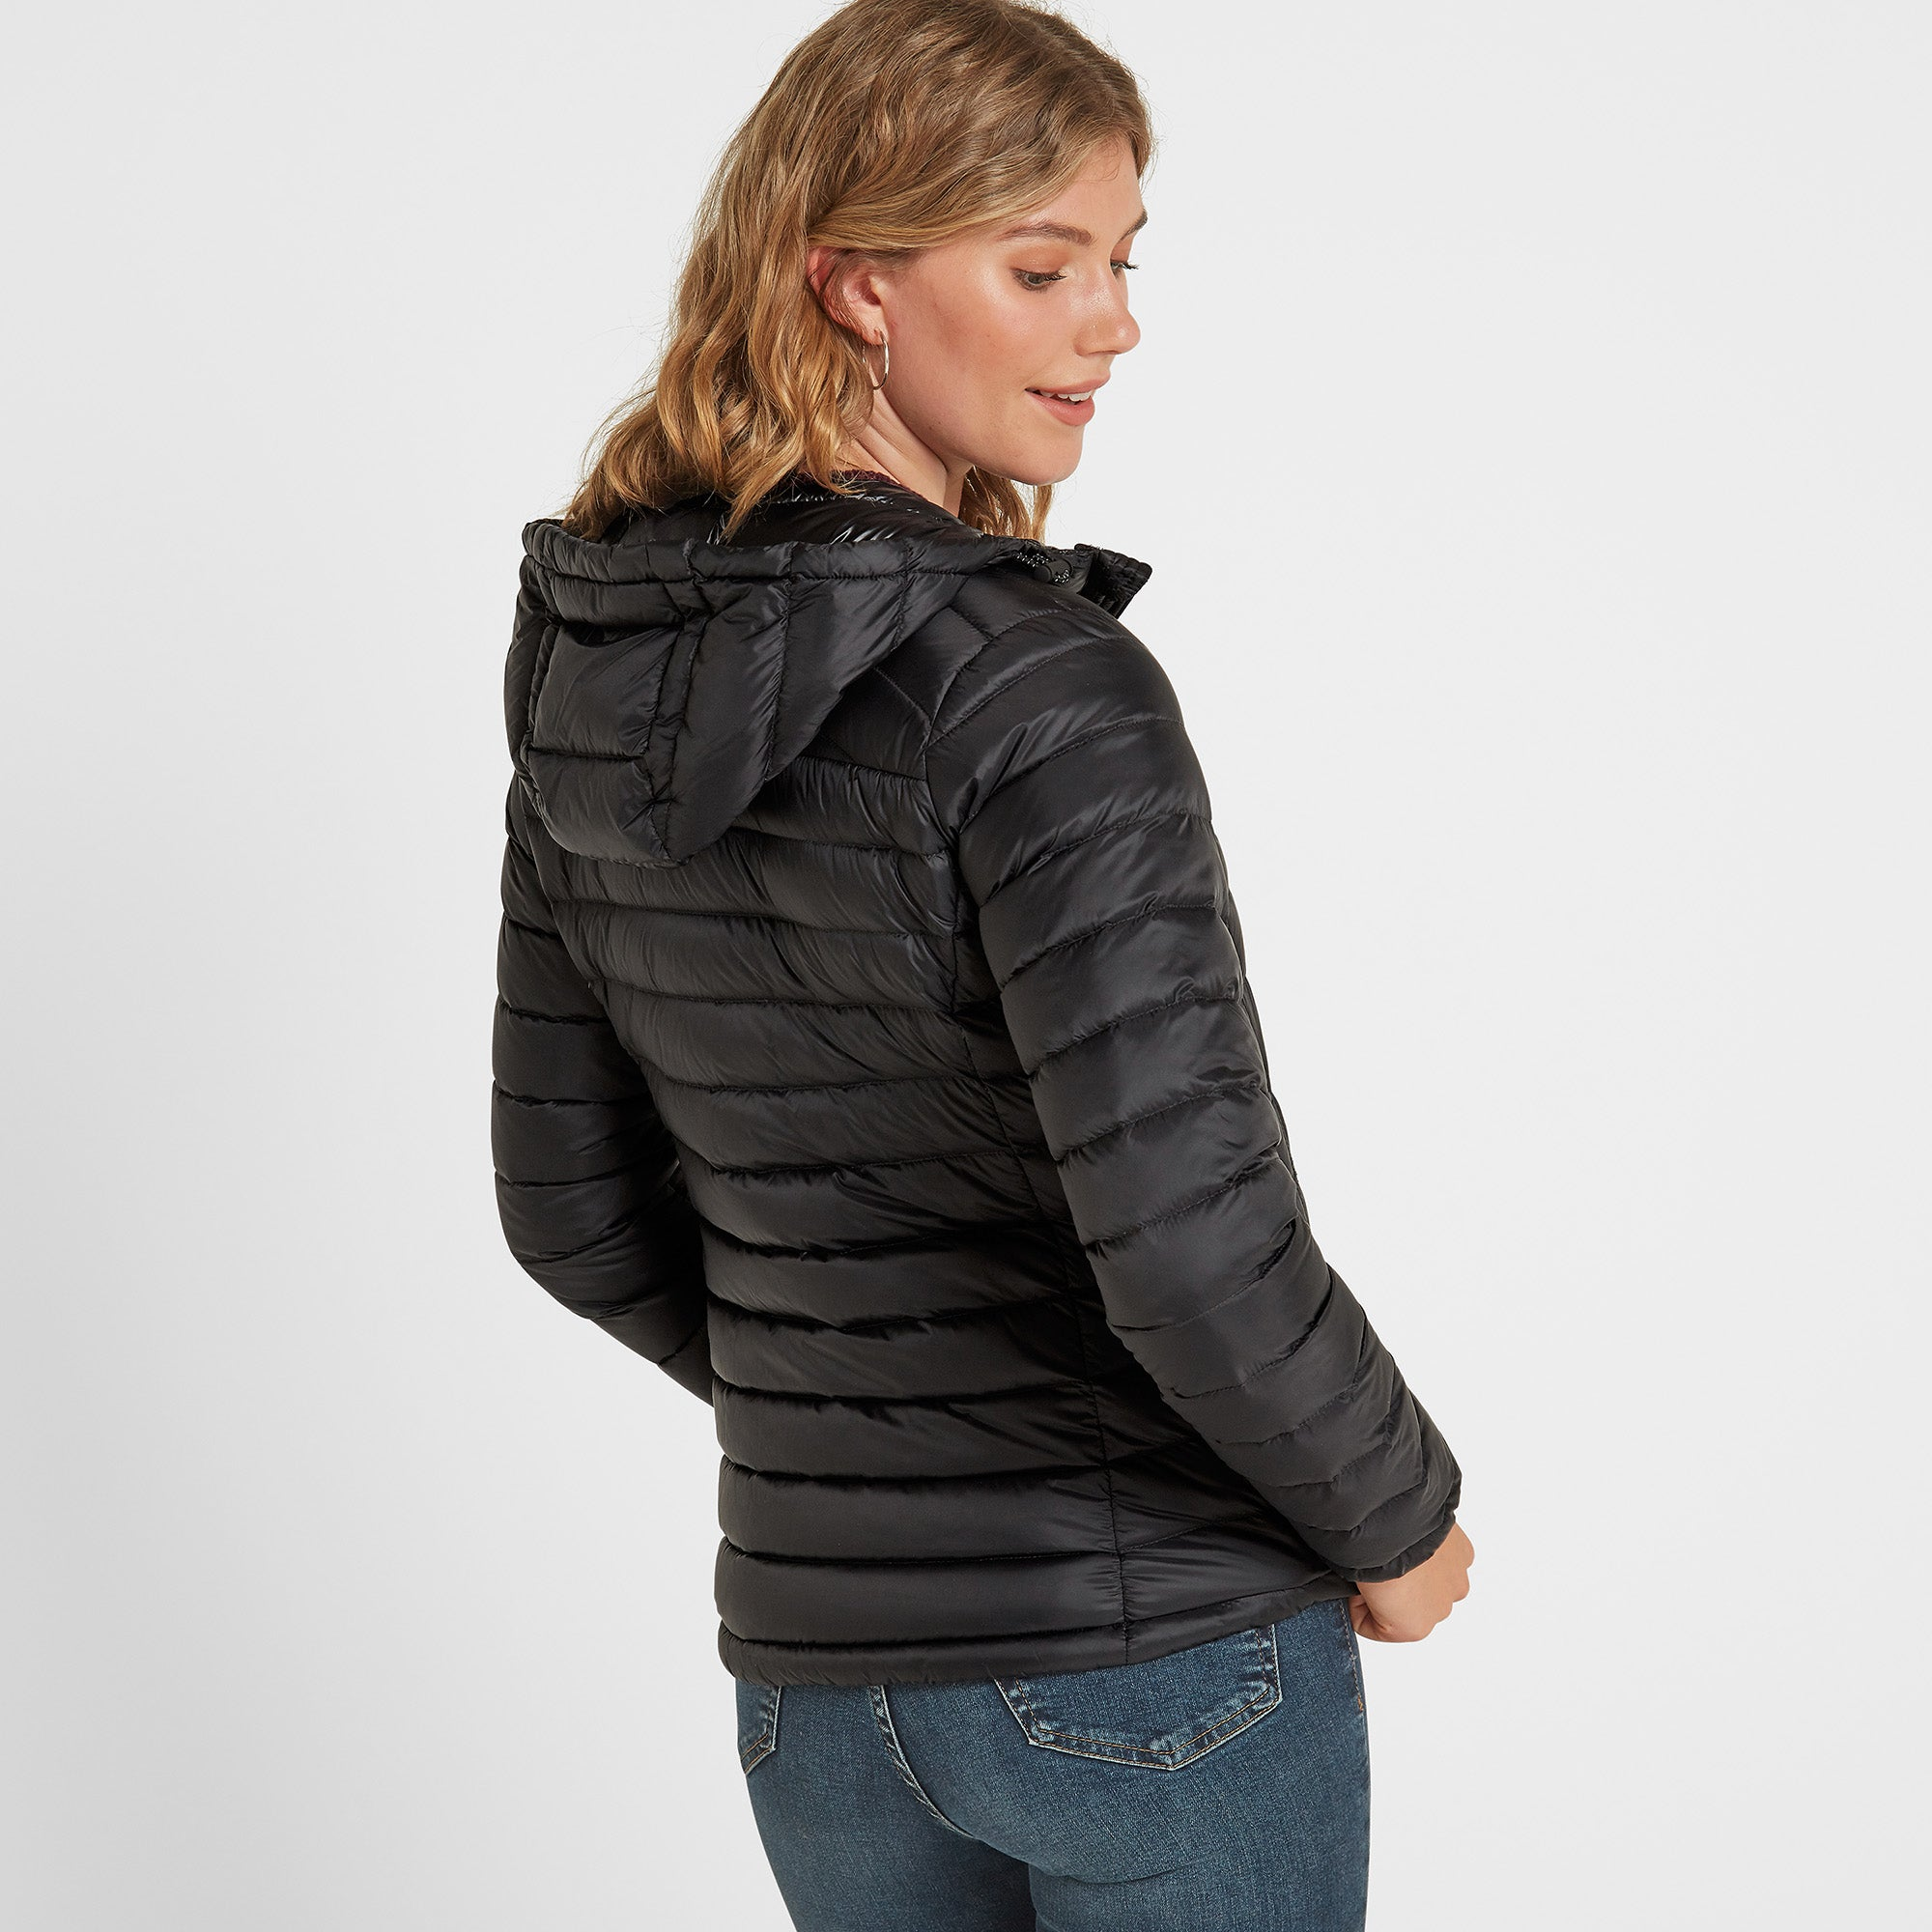 Drax Womens Hooded Down Jacket - Black